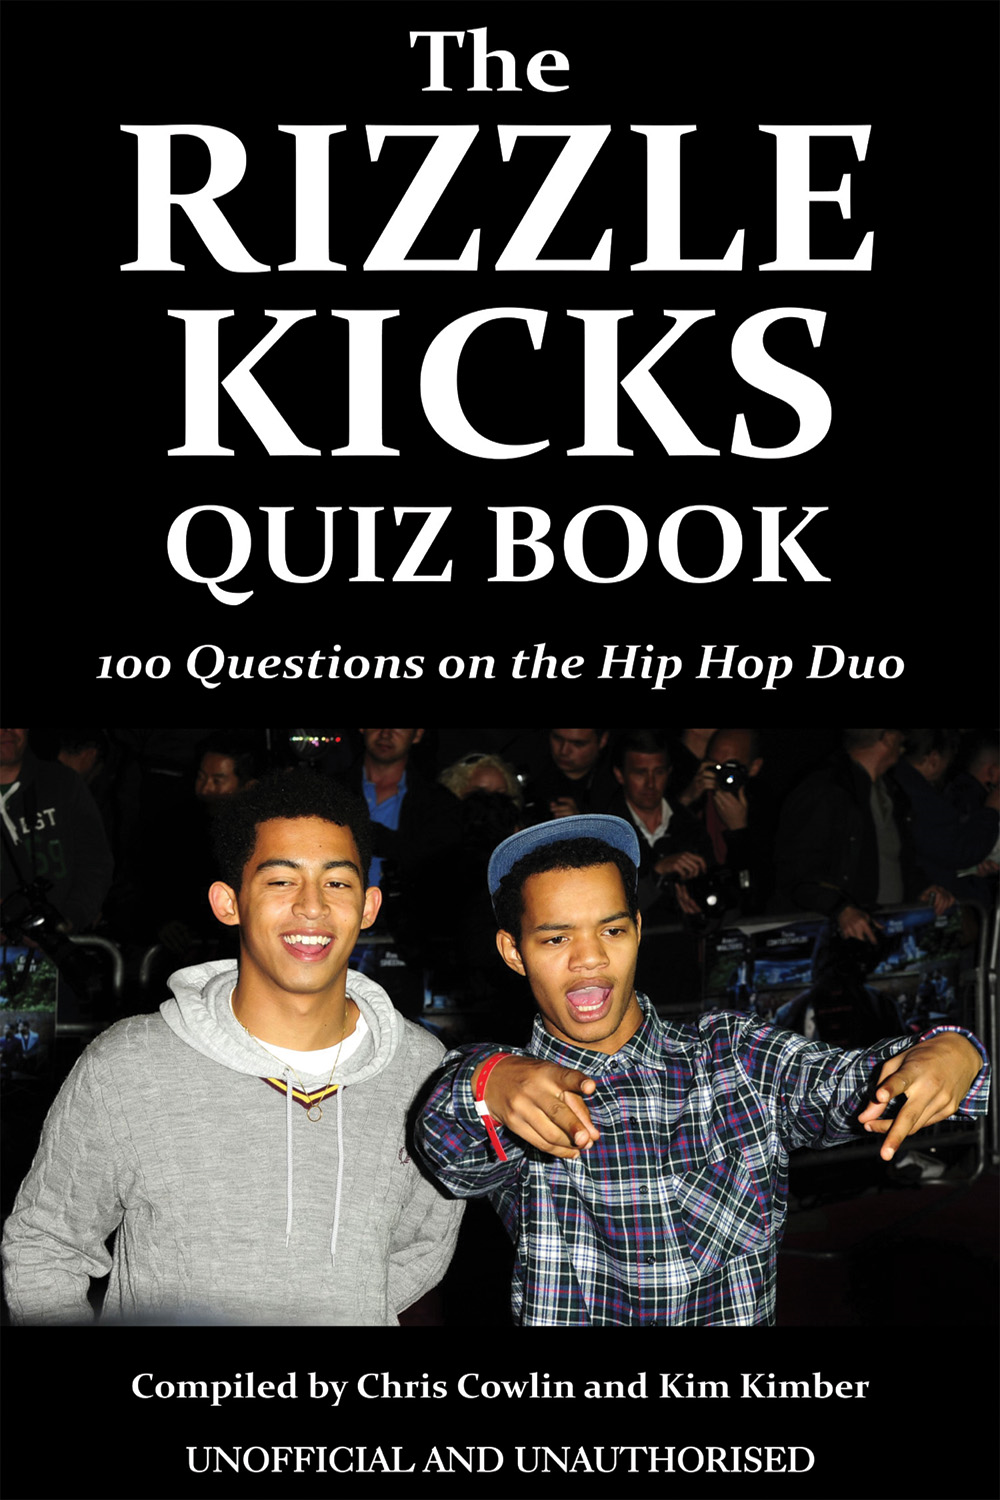 The Rizzle Kicks Quiz Book